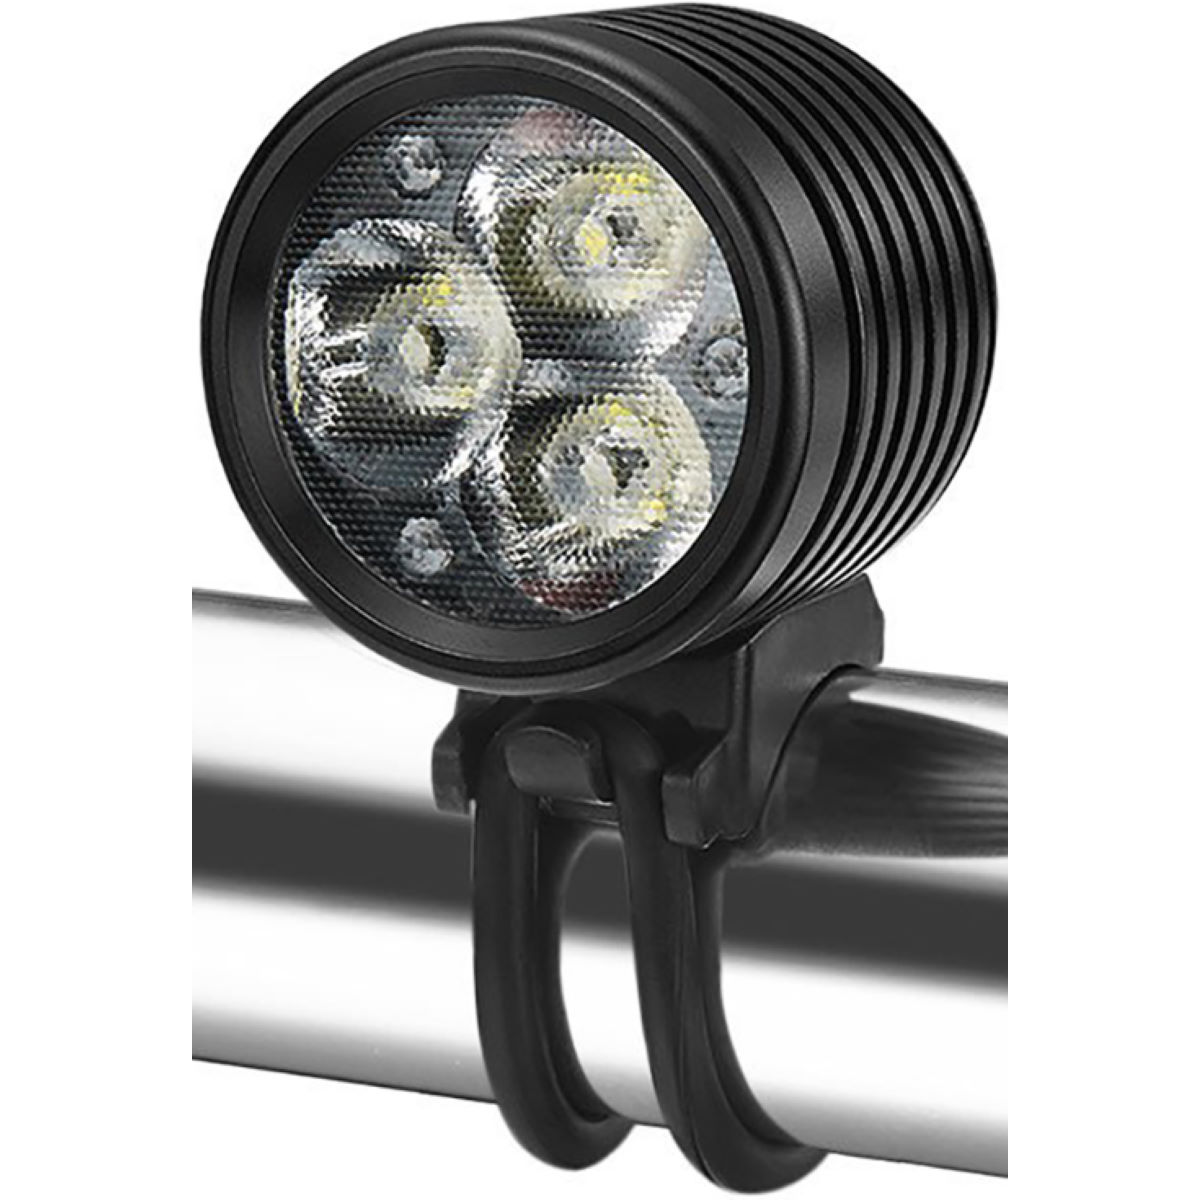 Gemini Olympia Light Head - Luces delanteras